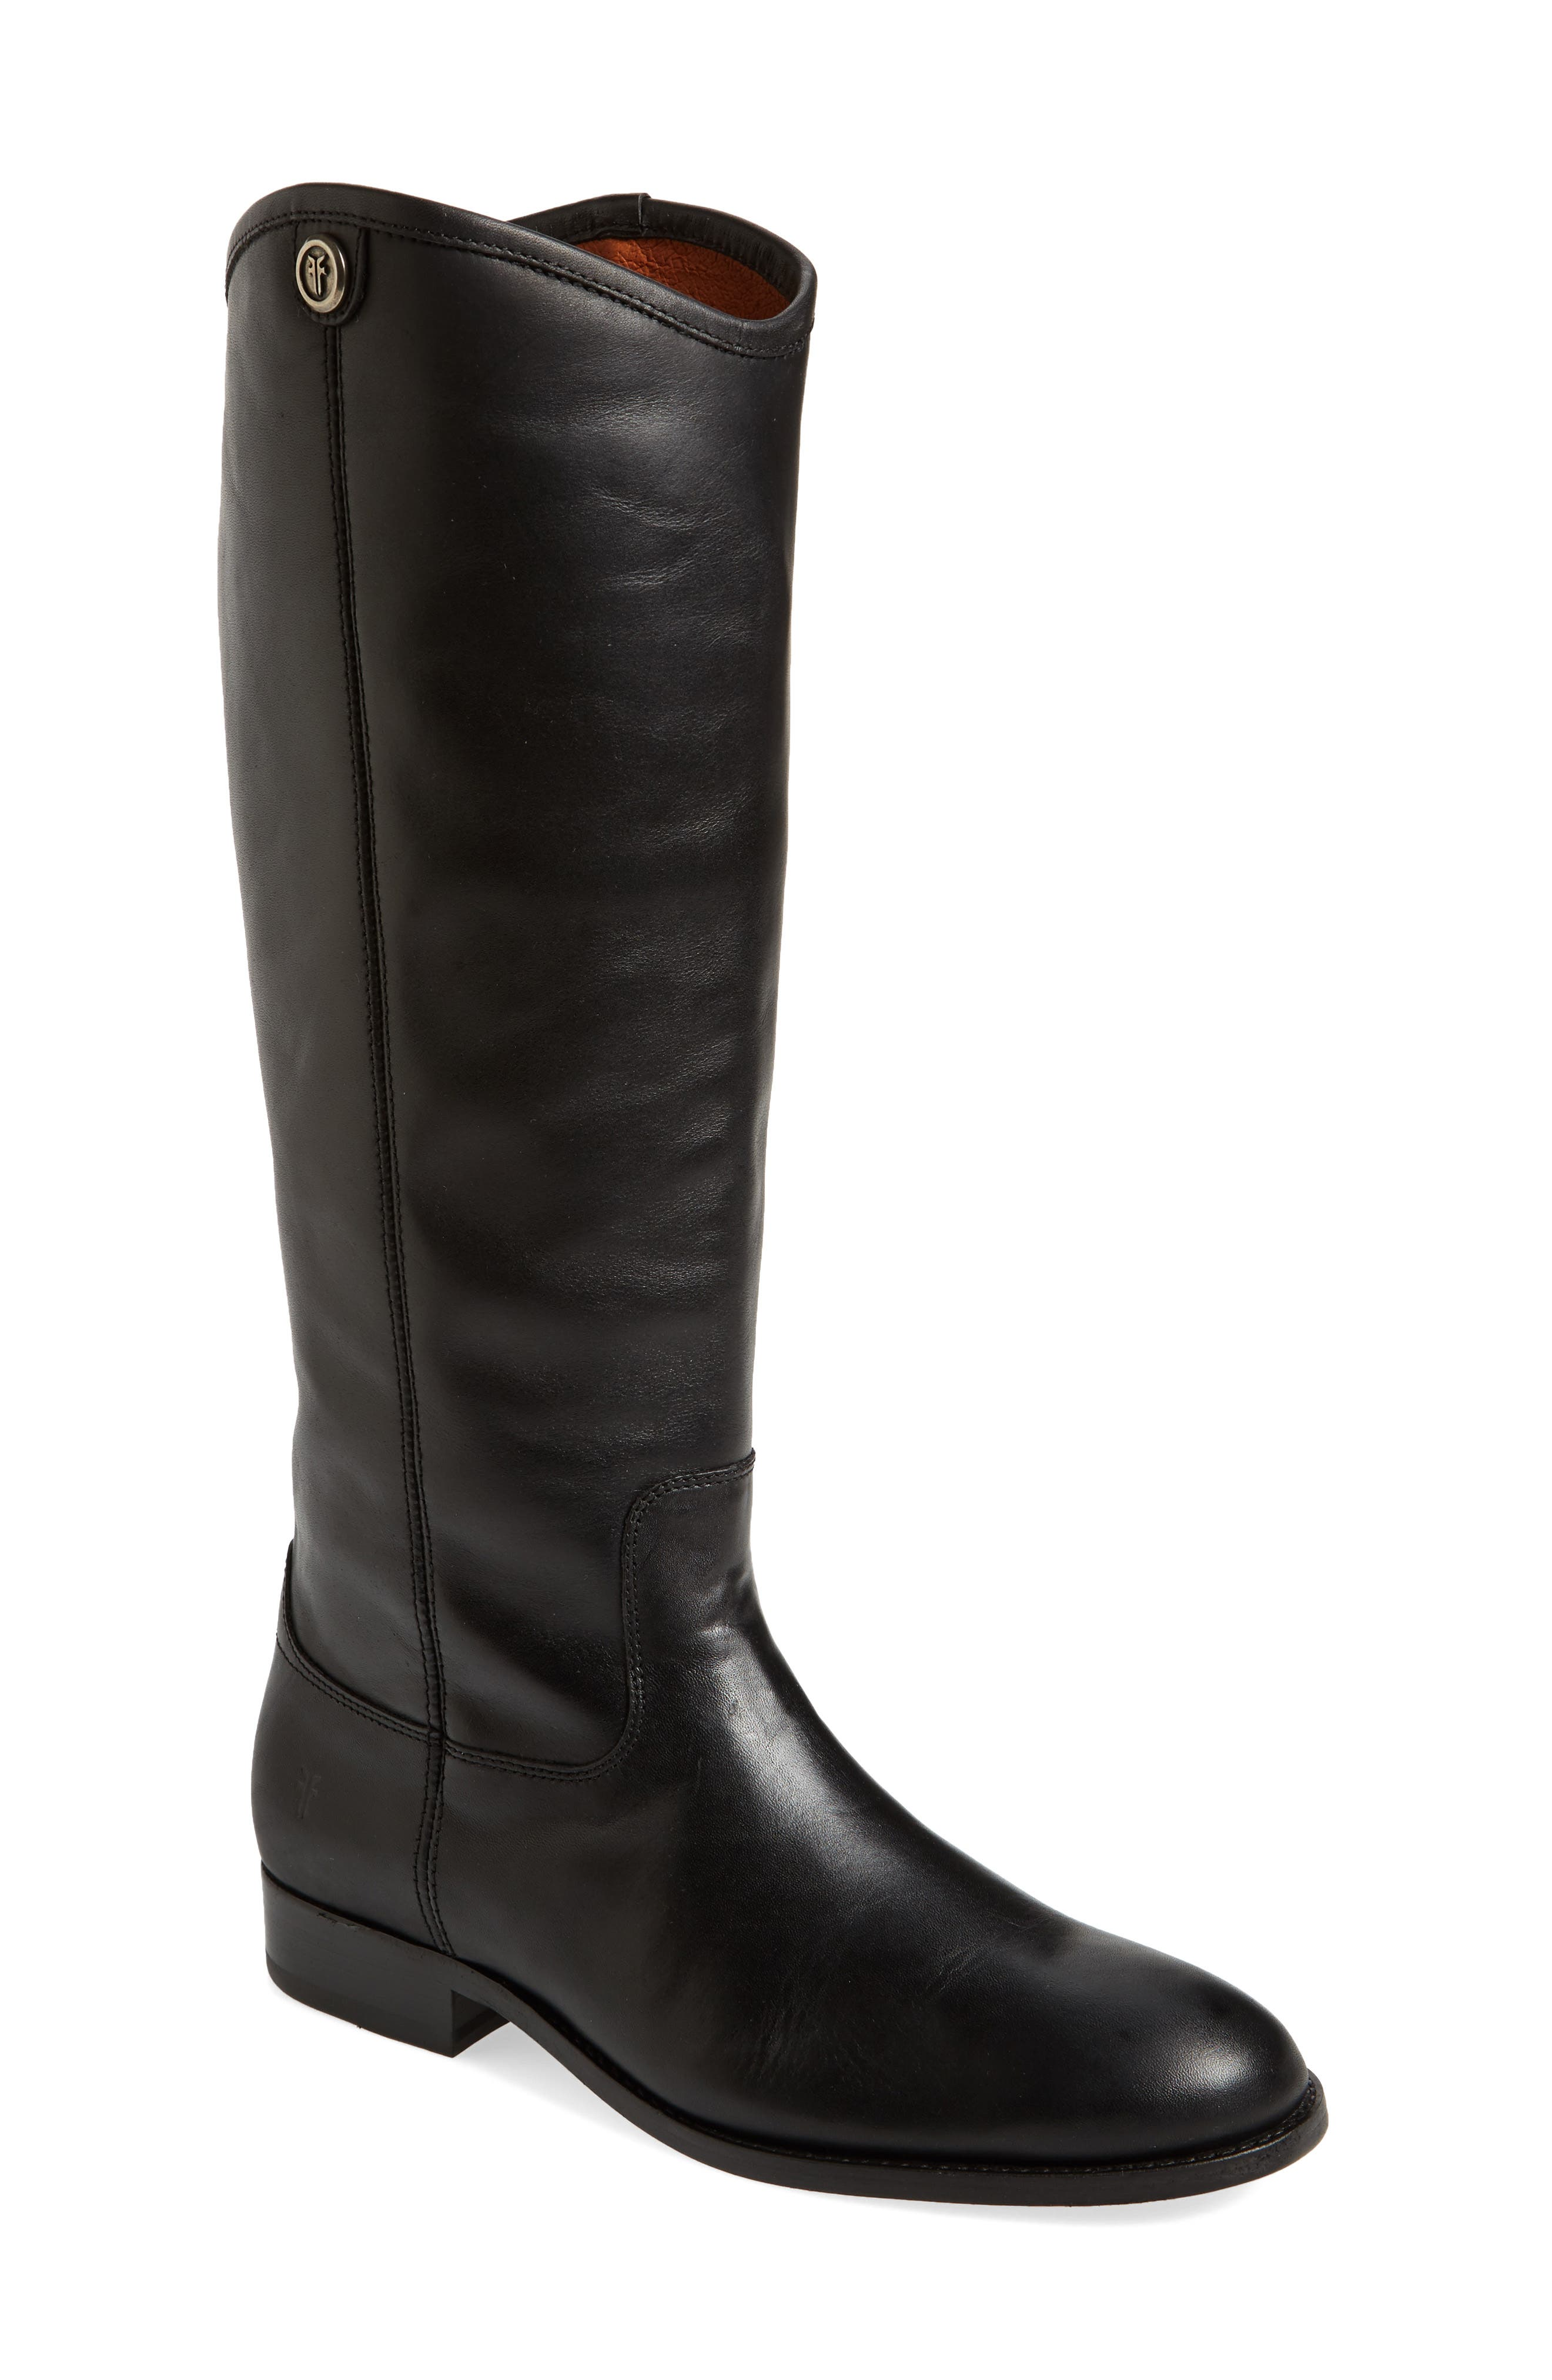 FRYE, Melissa Button 2 Knee High Boot, Main thumbnail 1, color, BLACK LEATHER